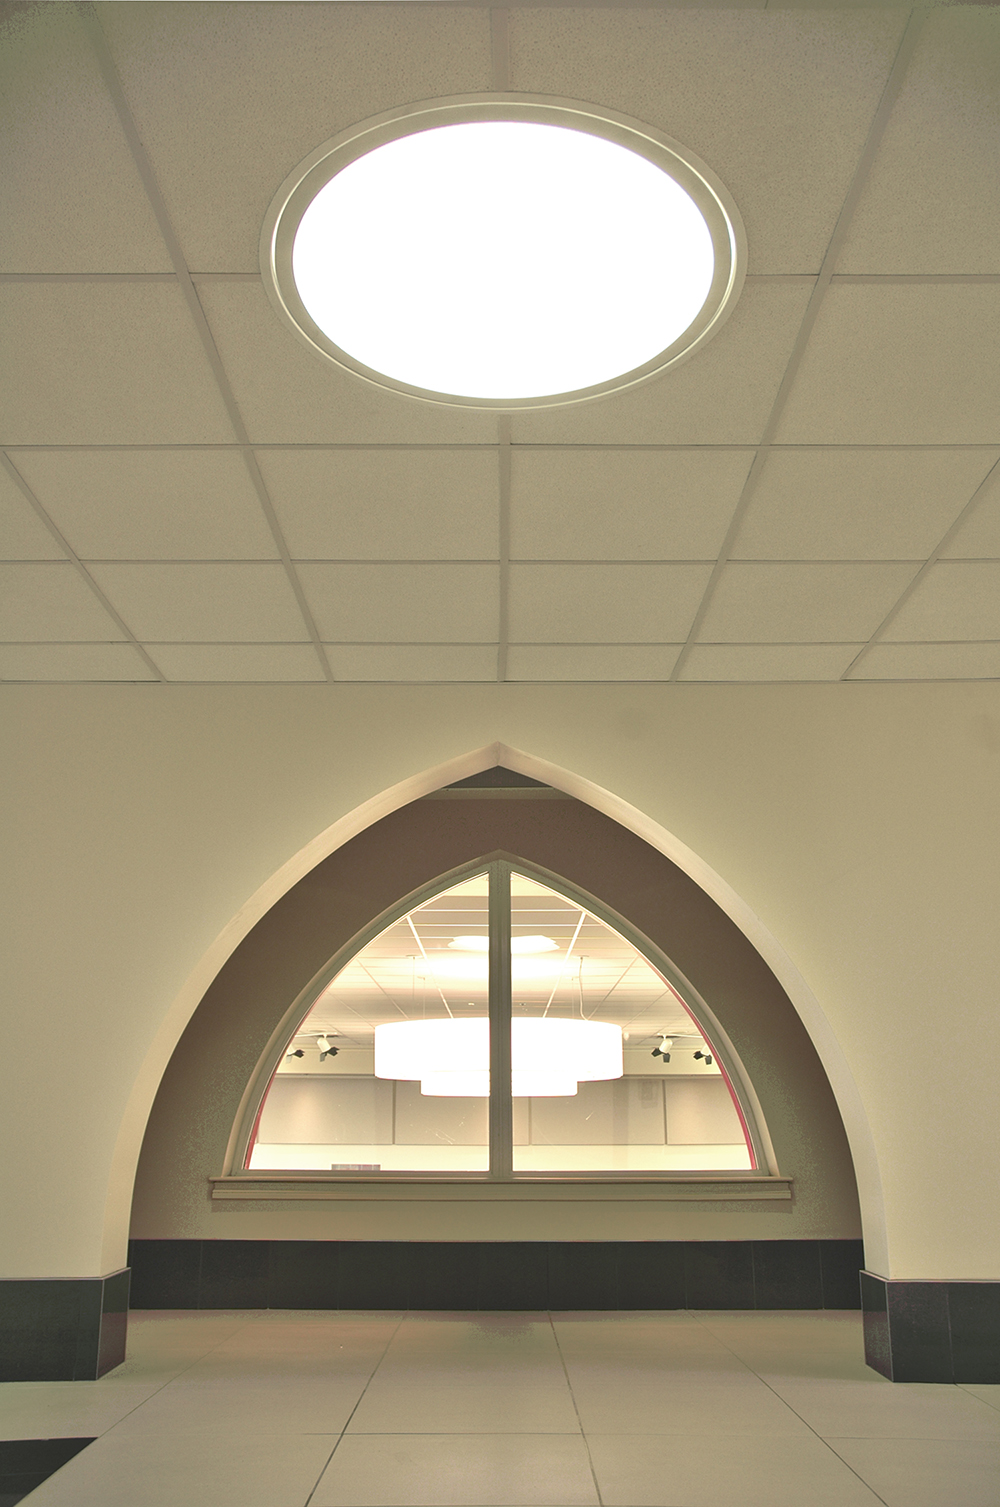 Punjab Cultural Centre, interior photo of arch and skylight / Photo: Derrick Finch